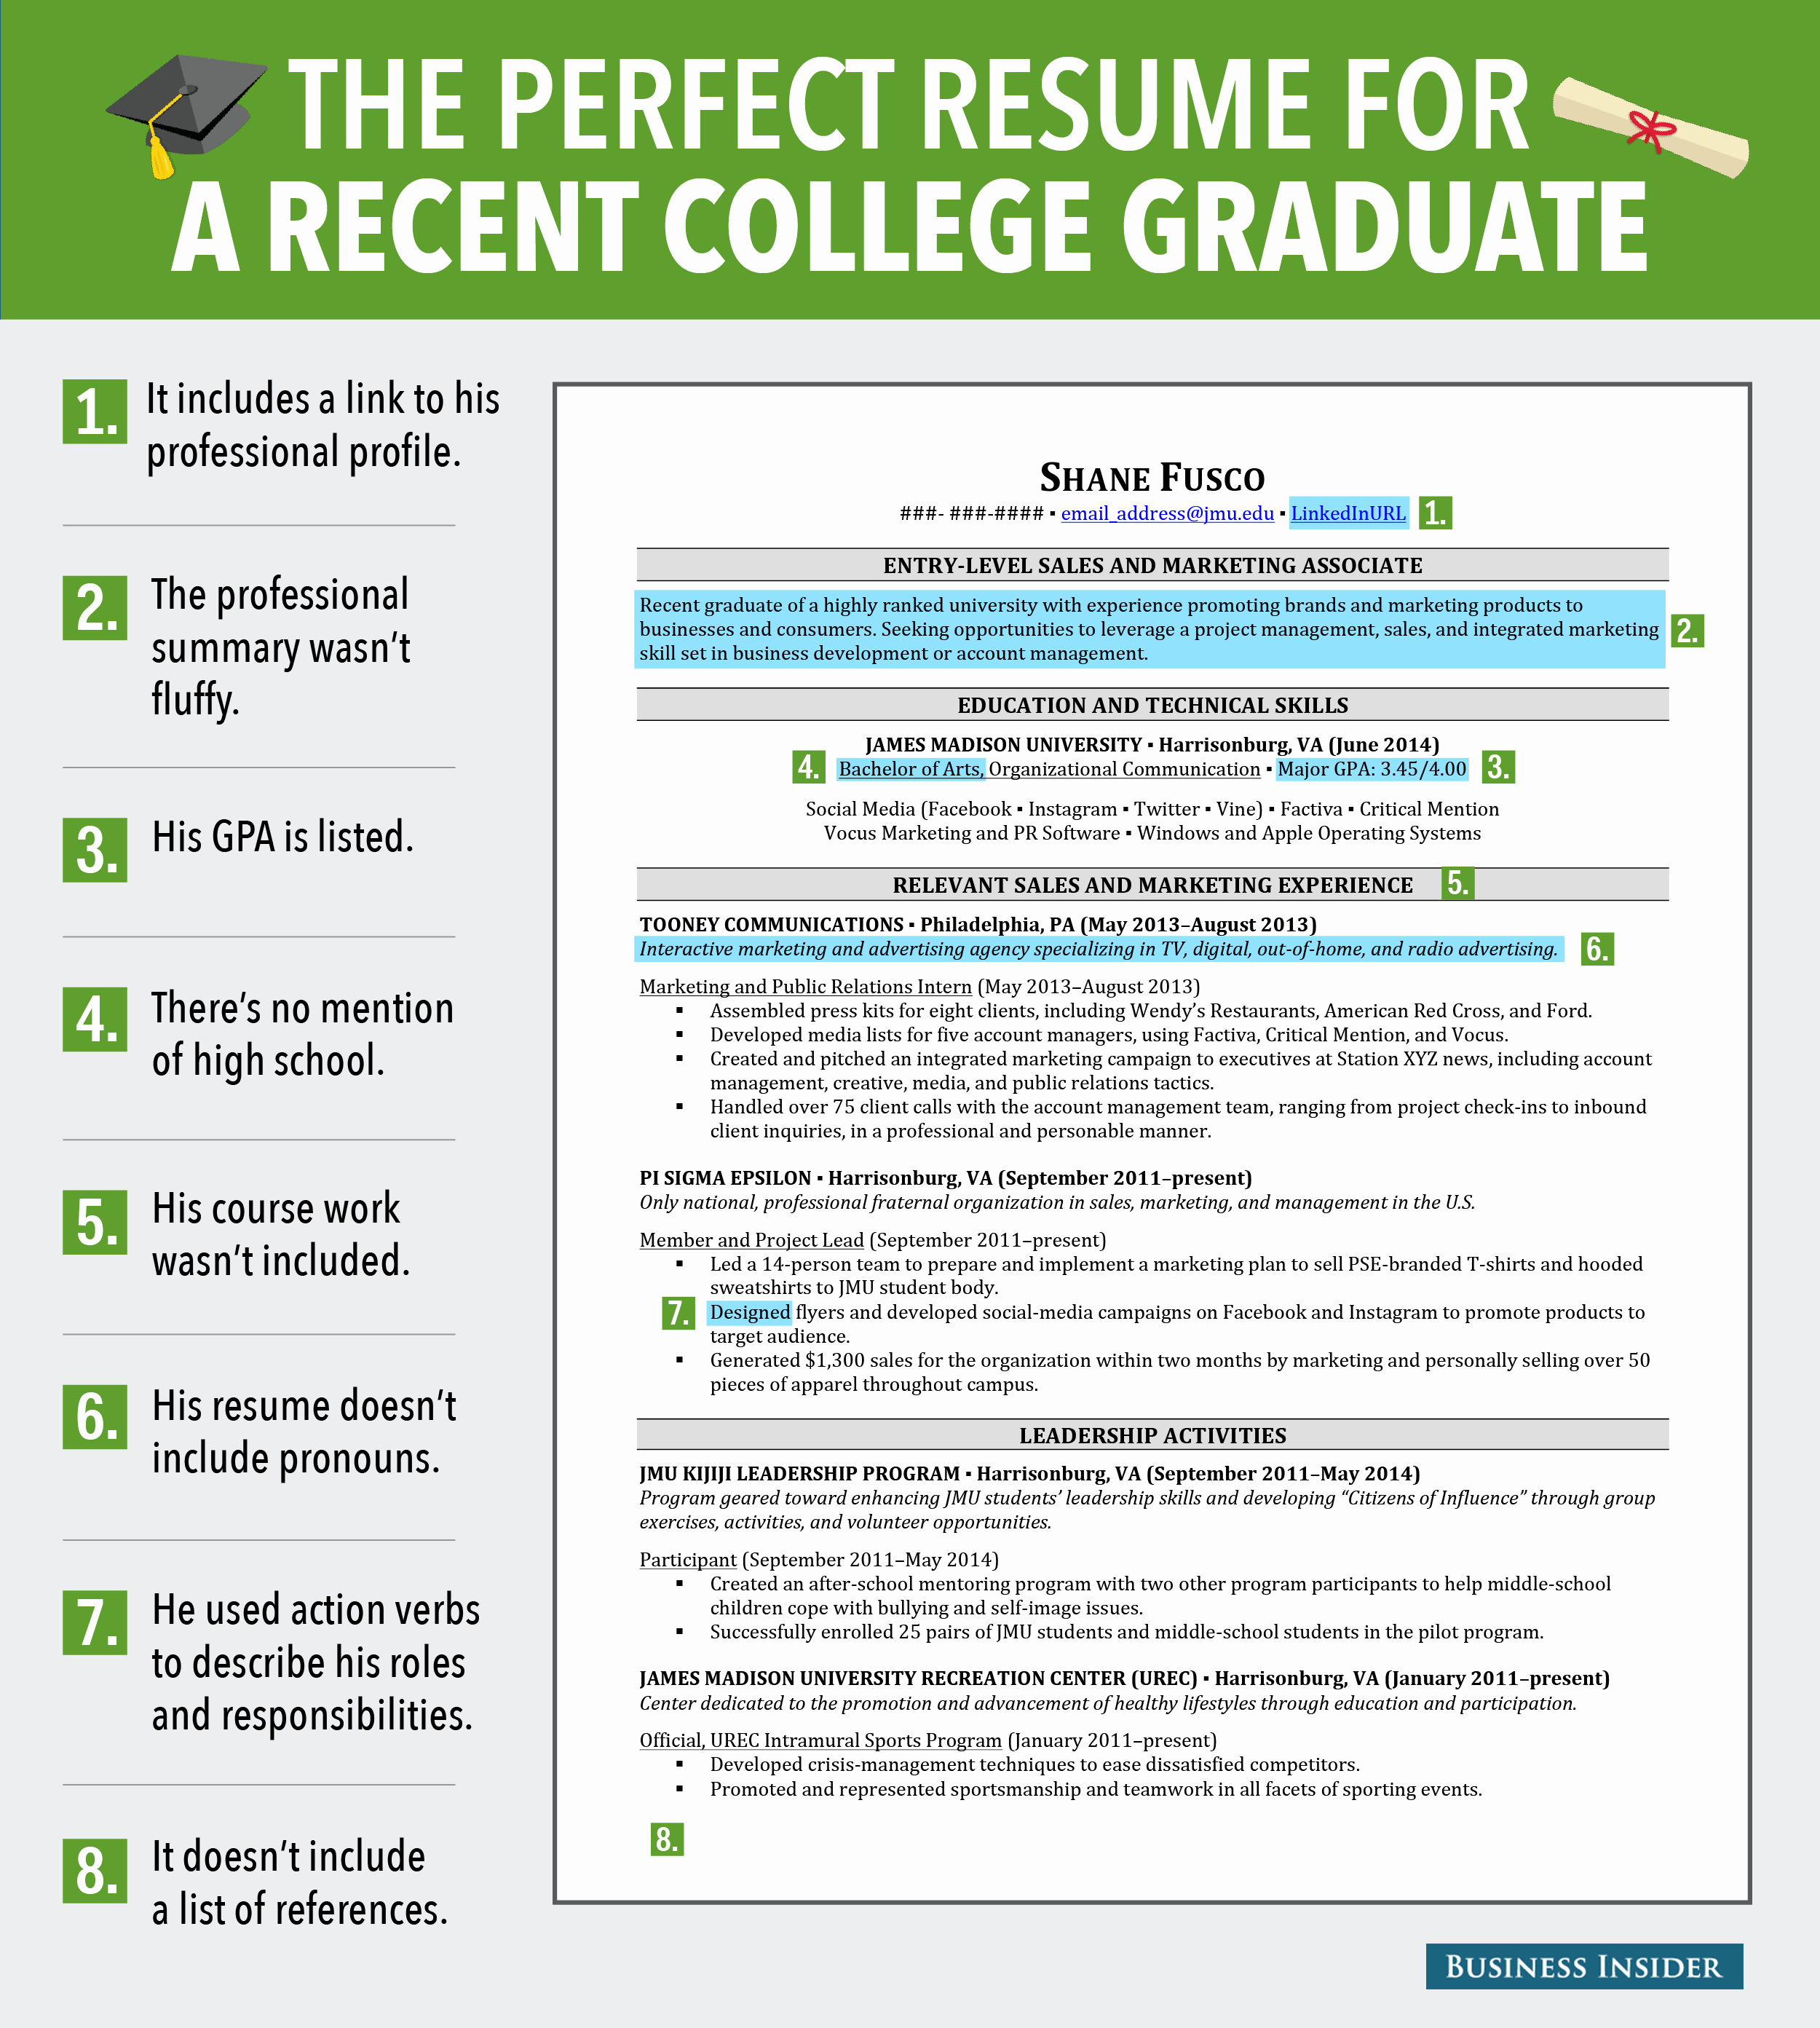 Resumes for Recent College Grads Lovely Excellent Resume for Recent Grad Business Insider